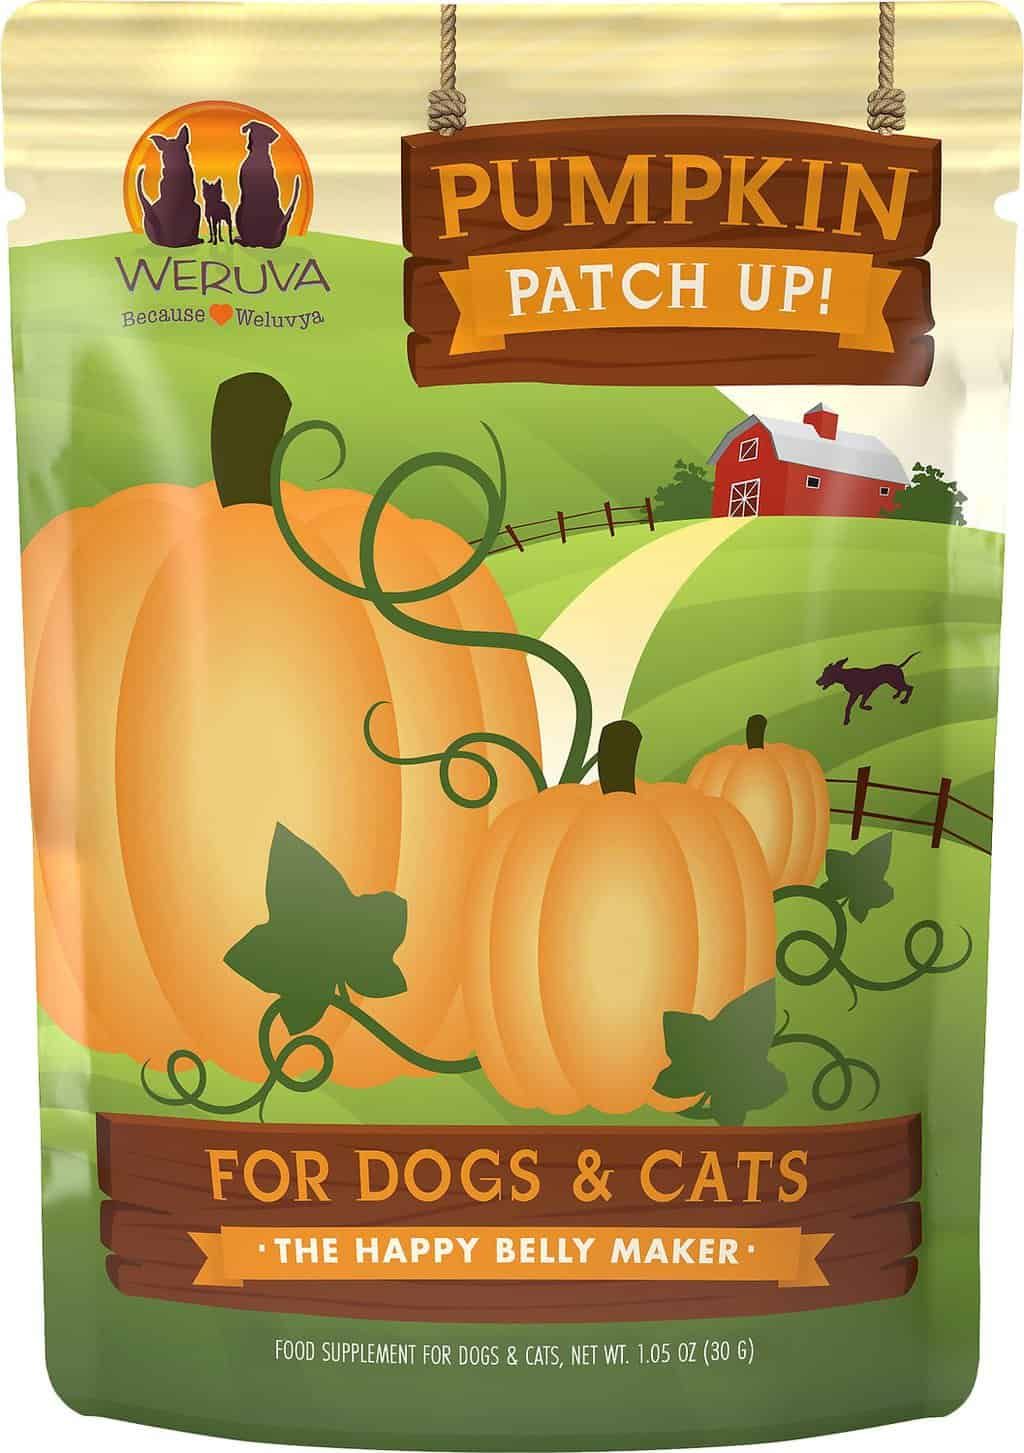 Weruva Dog Food Review 2020: Treat Your Pet To A Lil' Luxury! 22